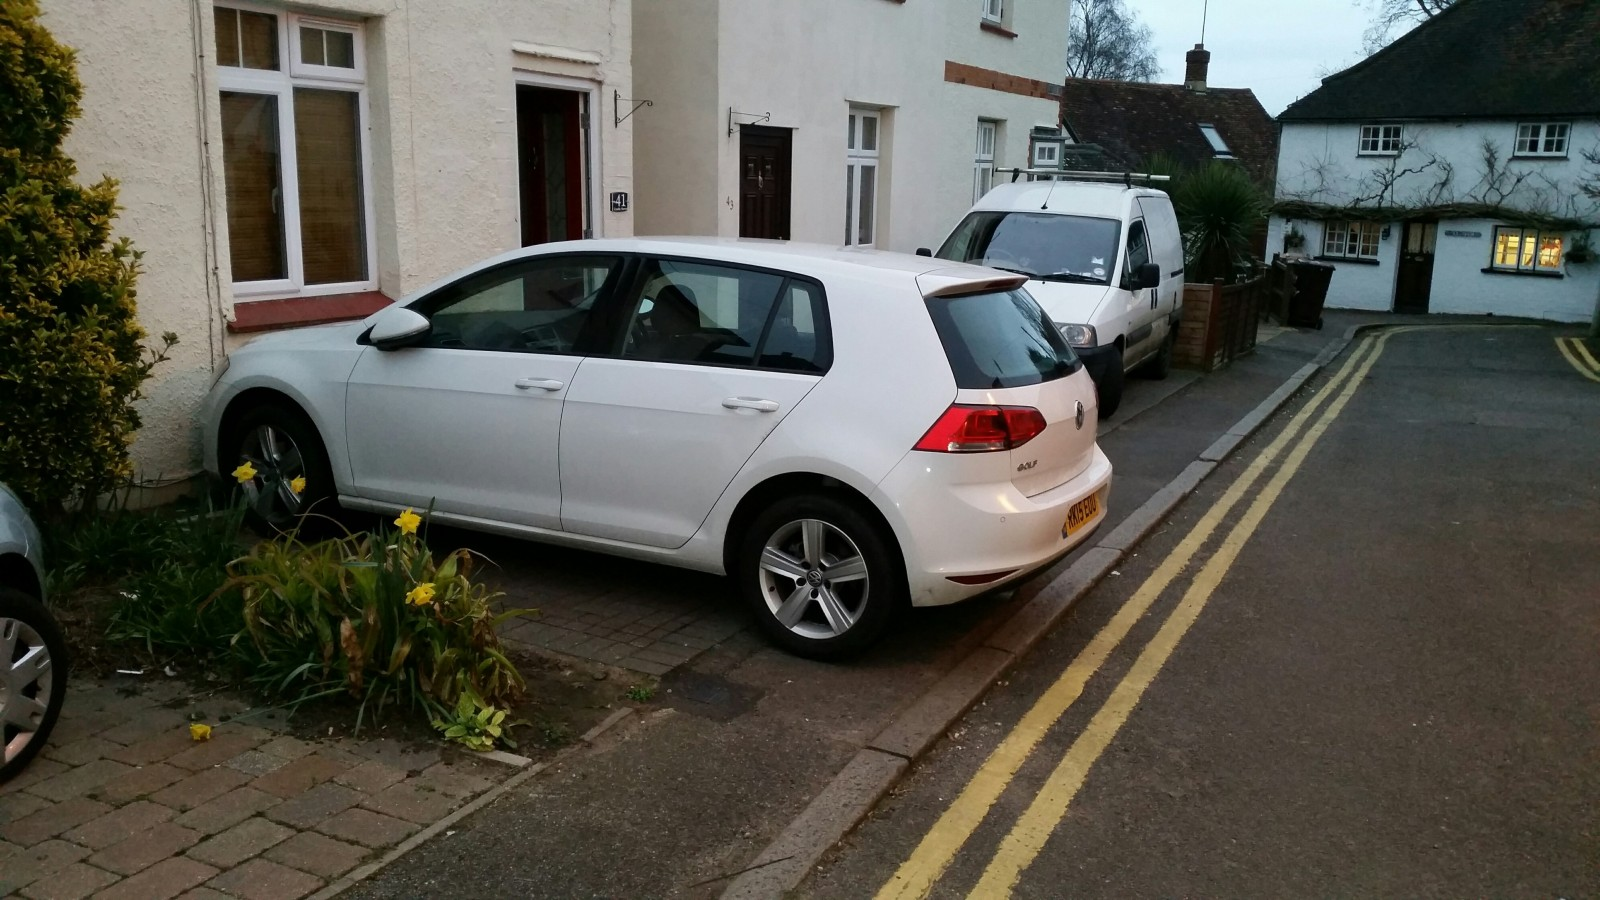 Niall McCarthy's car parked on his drive - where he received a parking ticket.